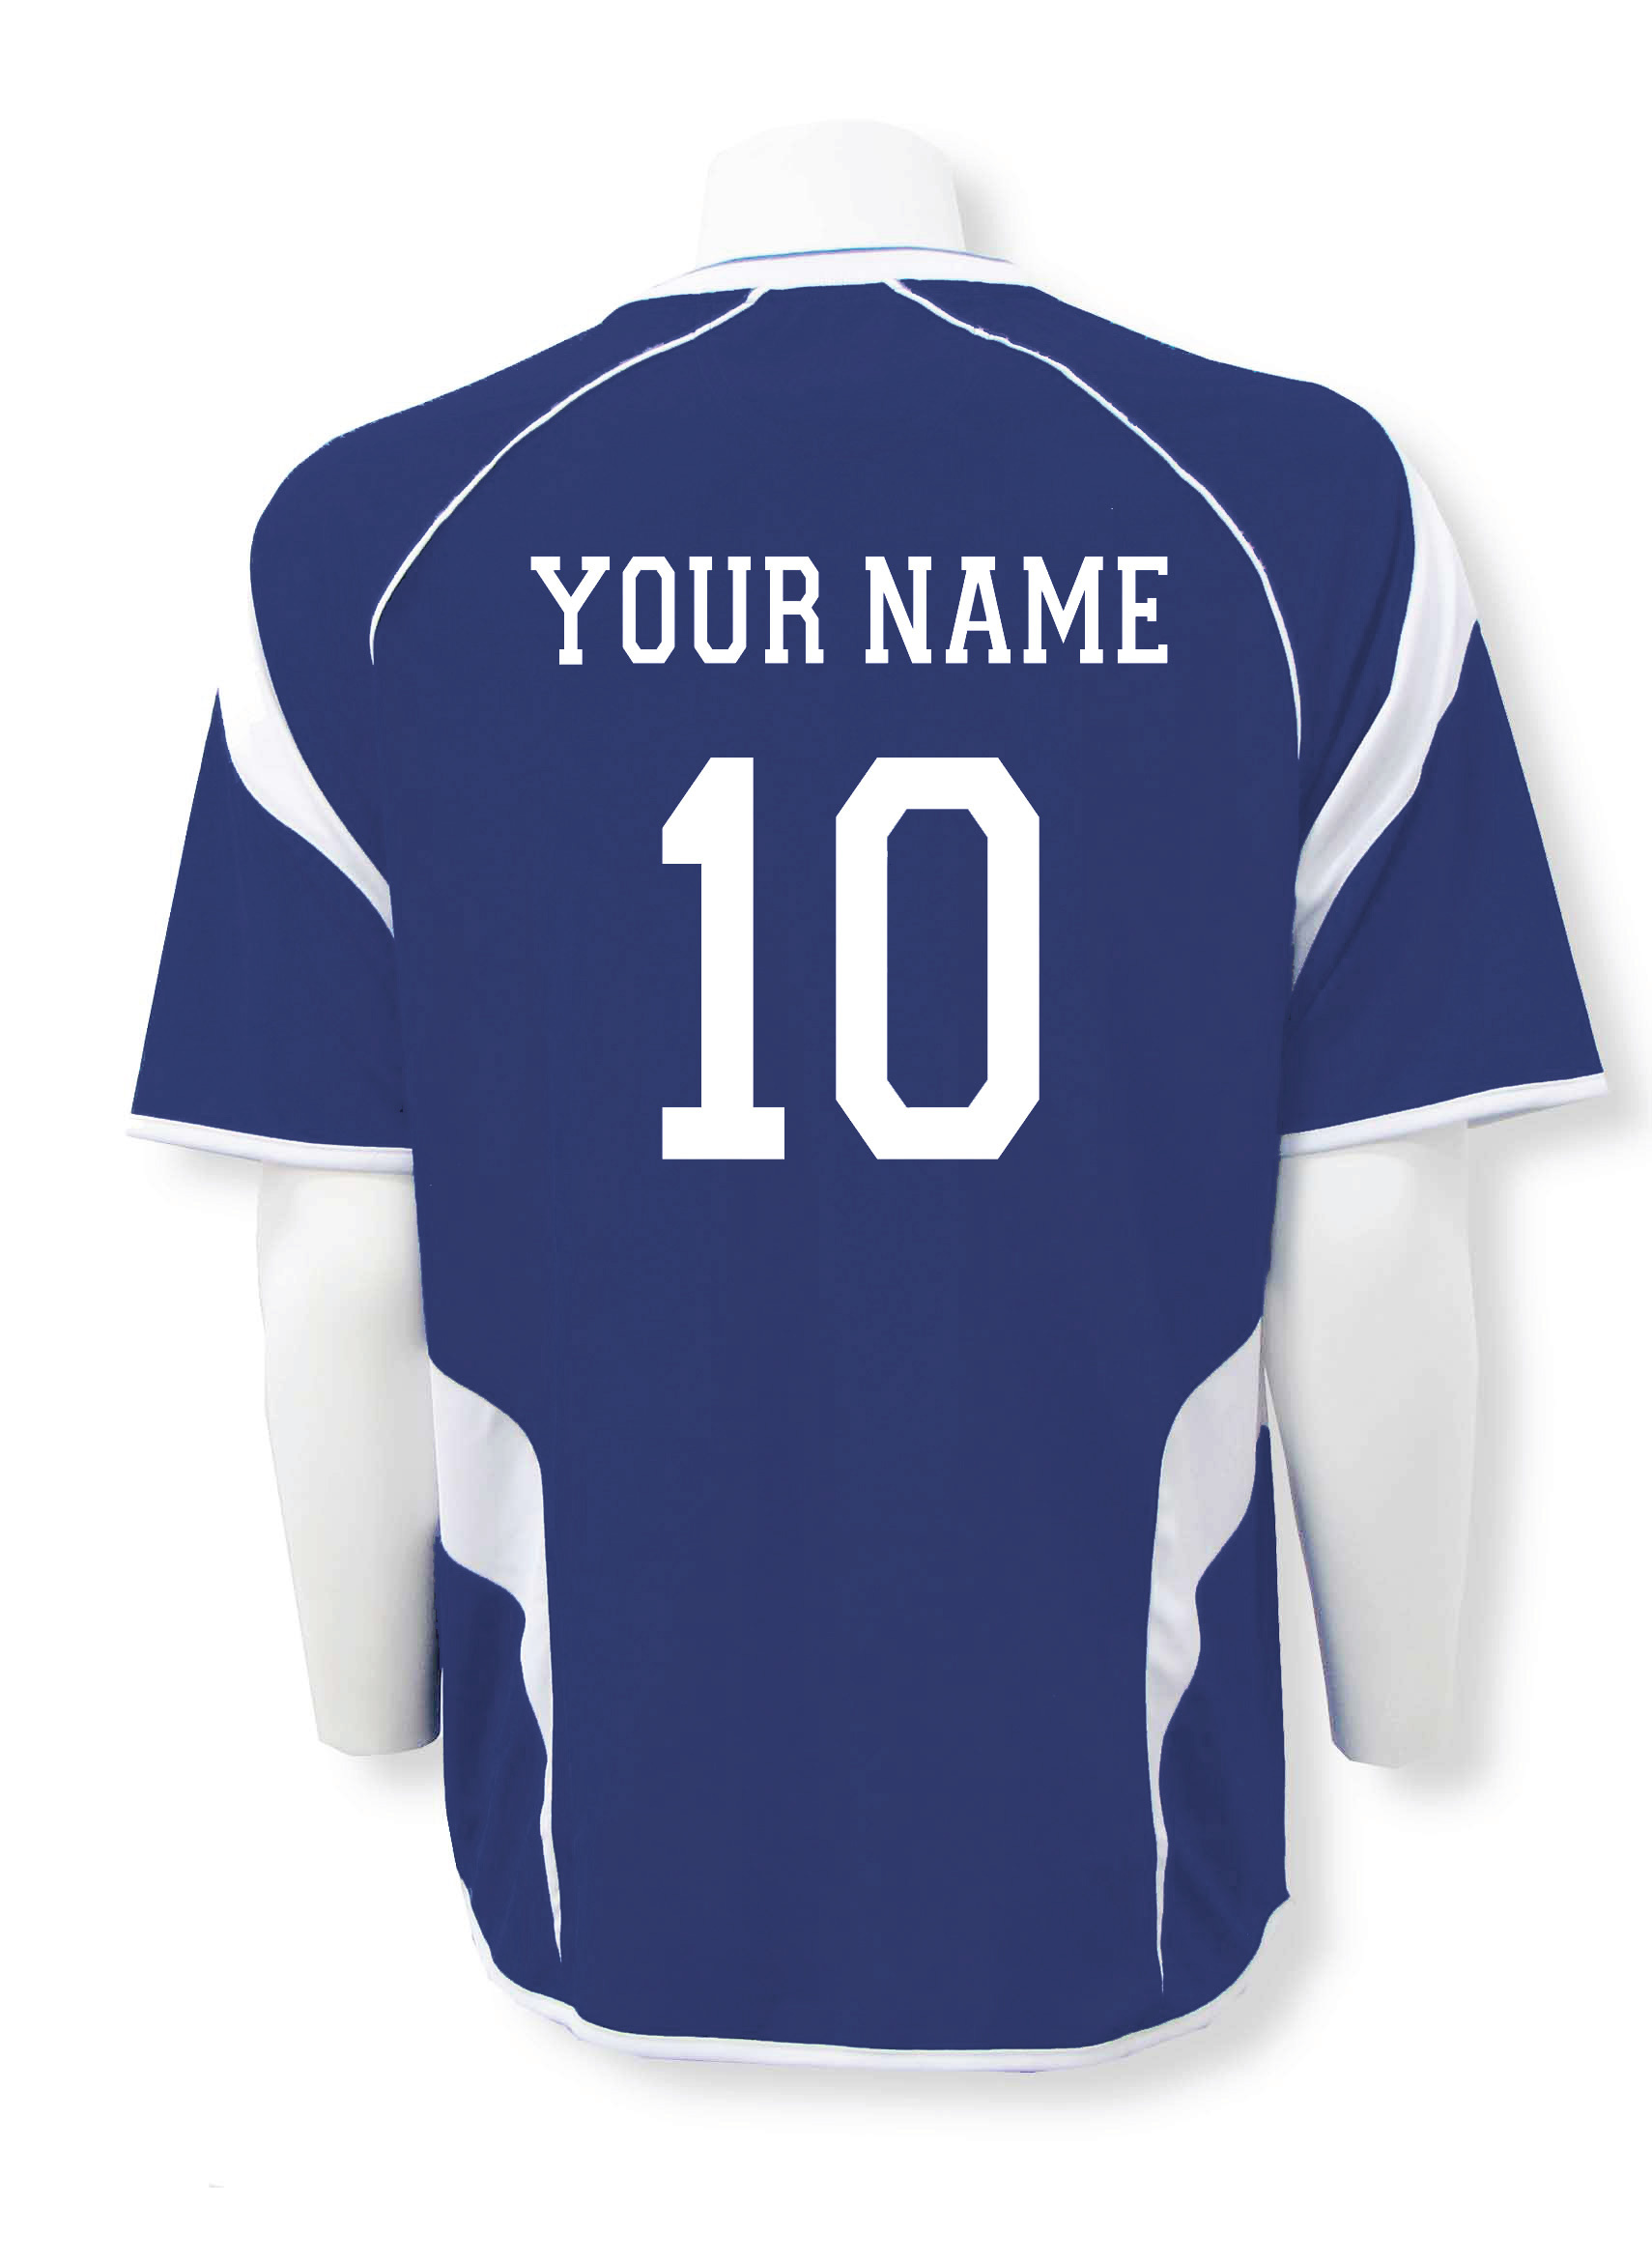 Soccer jersey customized with name and number by Code Four Athletics